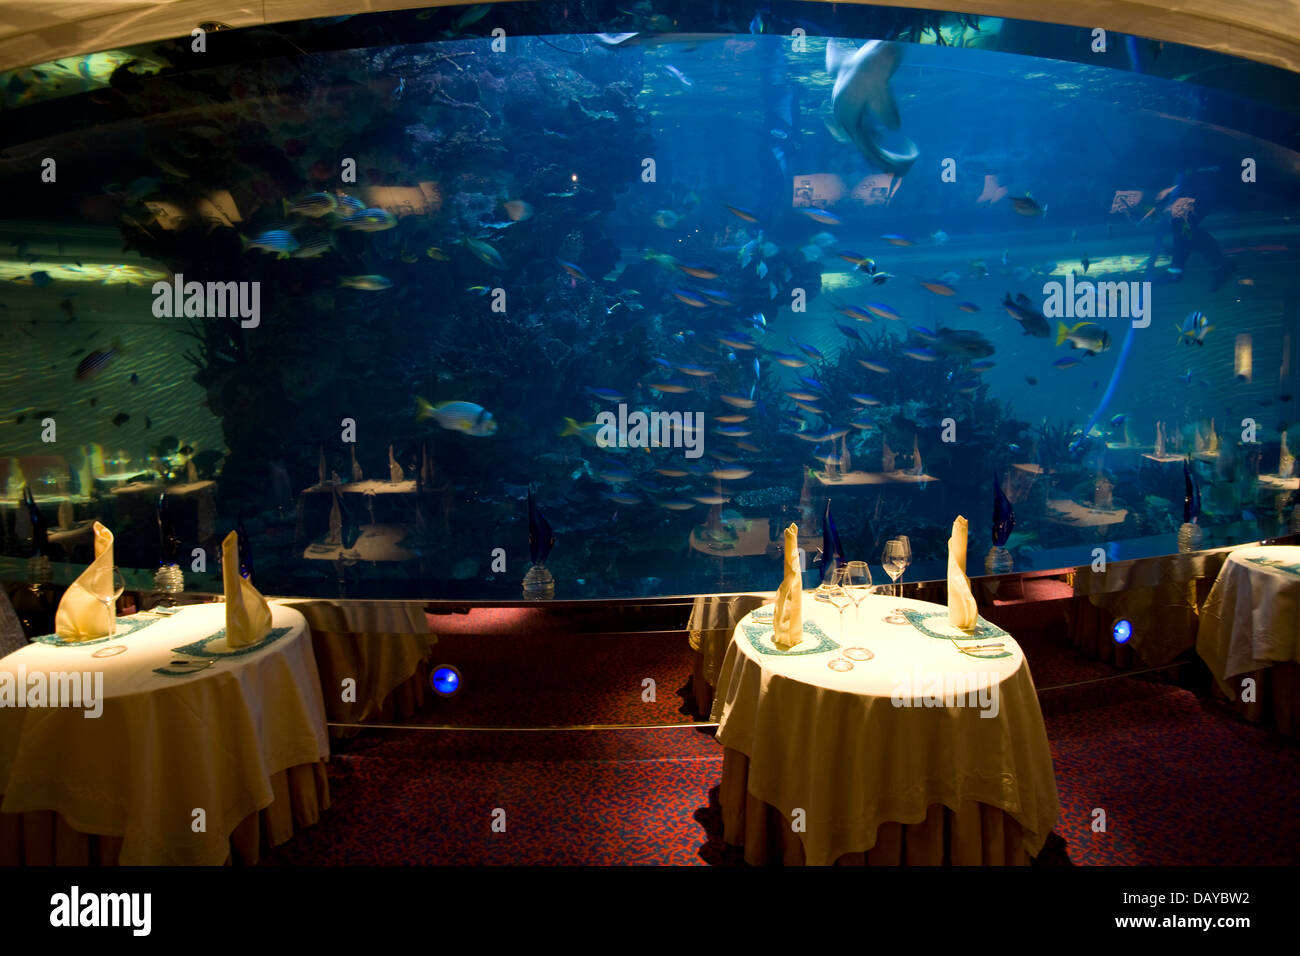 The Al Mahara Aquarium Restaurant Burj Al Arab Hotel